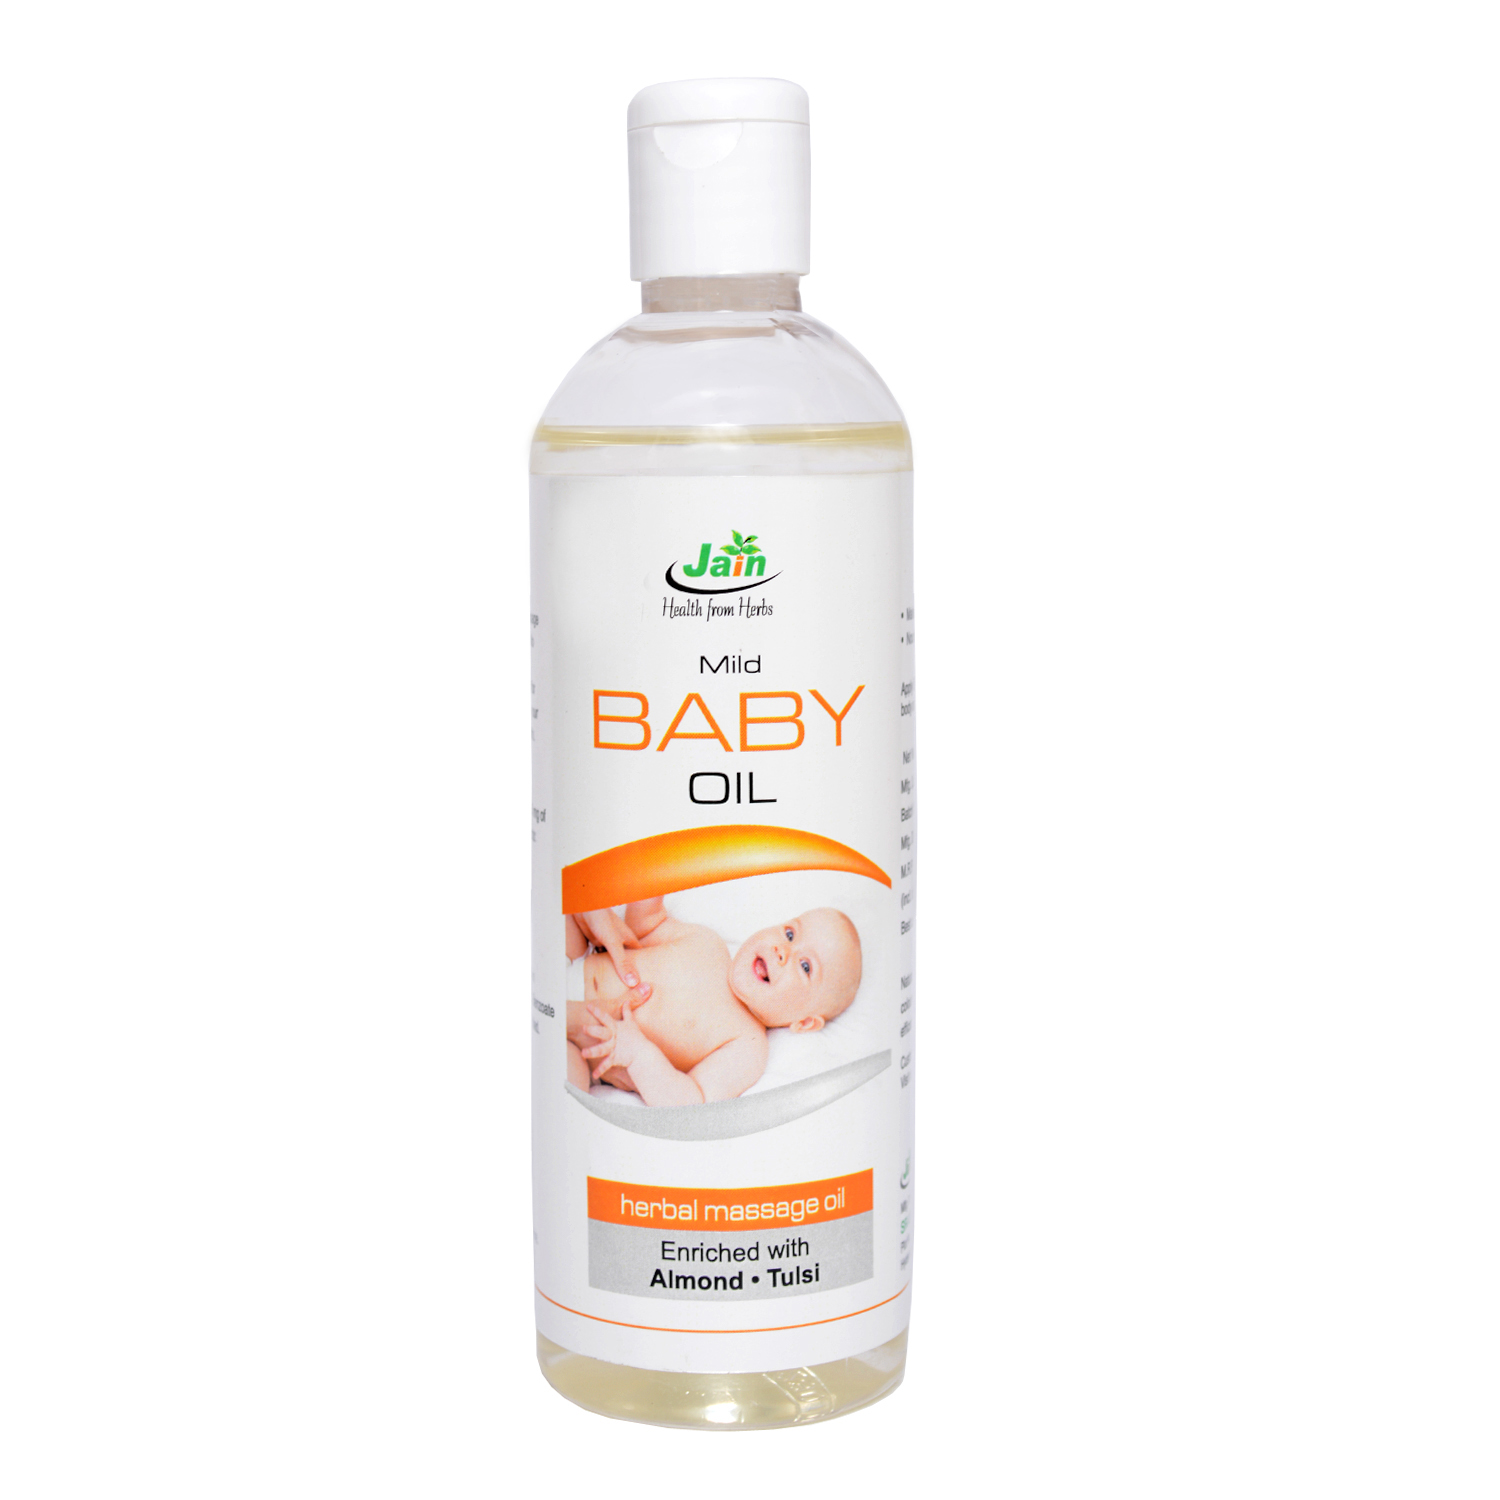 Mild Baby Massage Oil